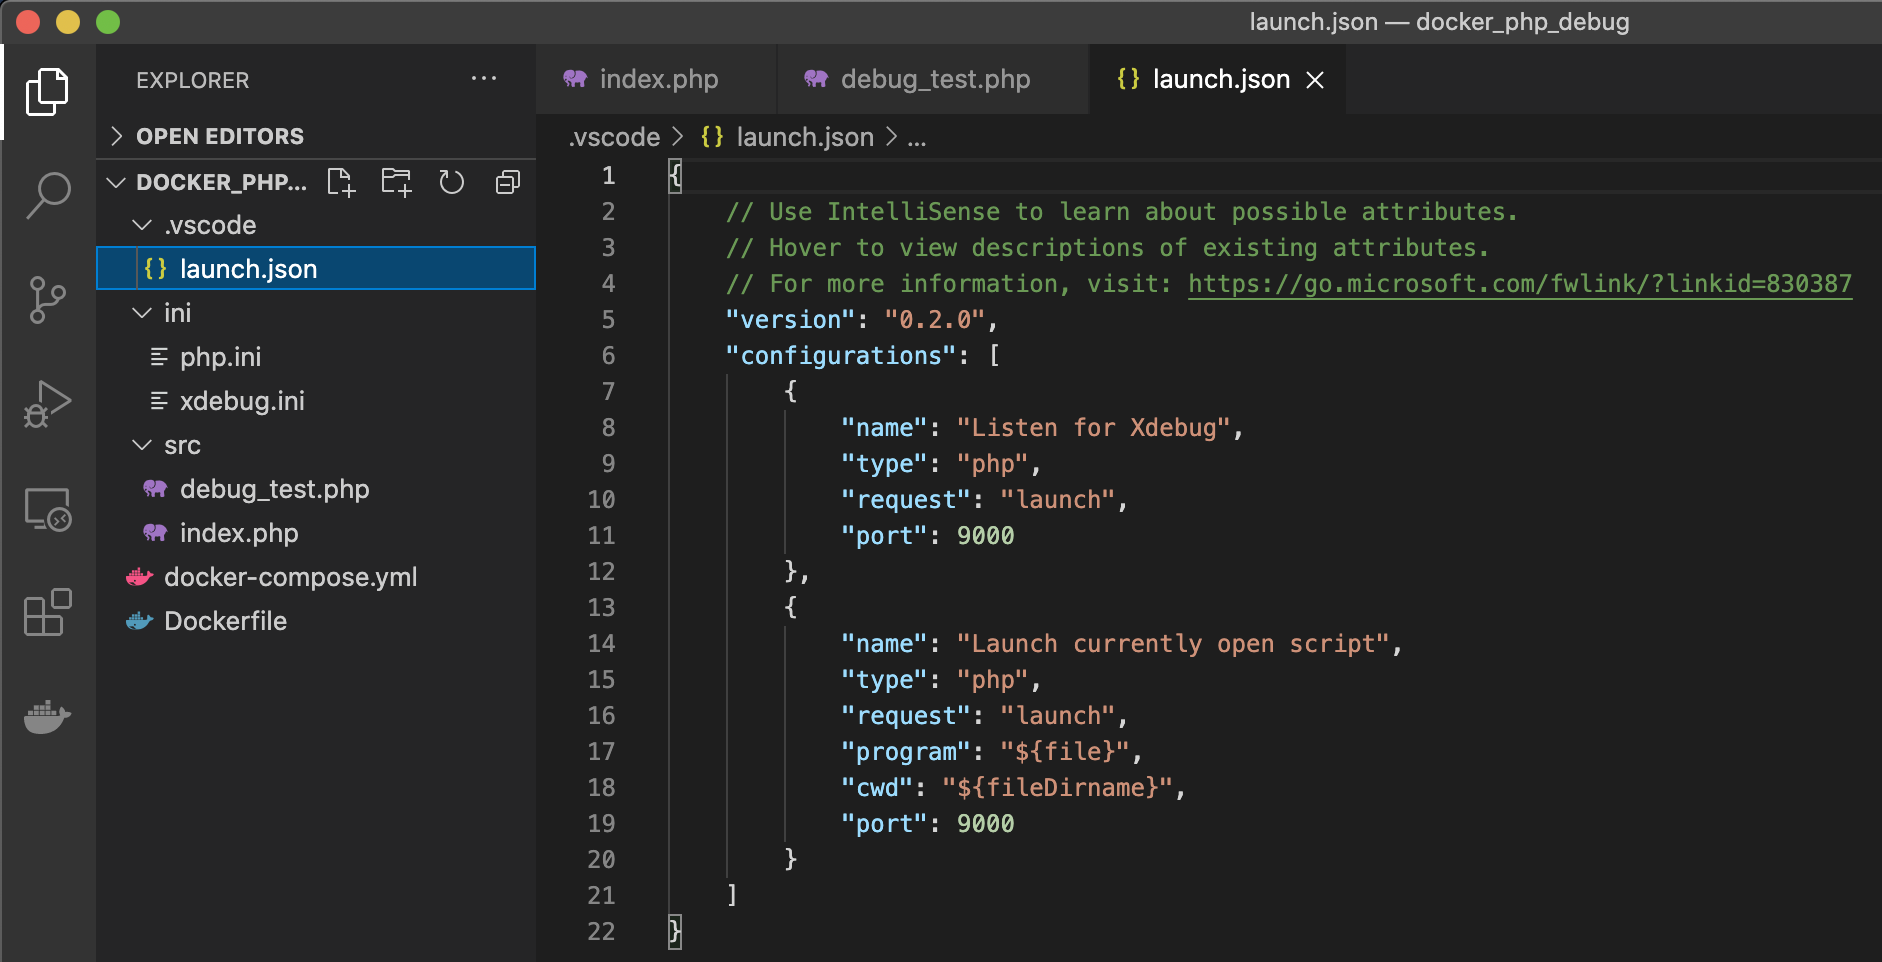 launch.json php